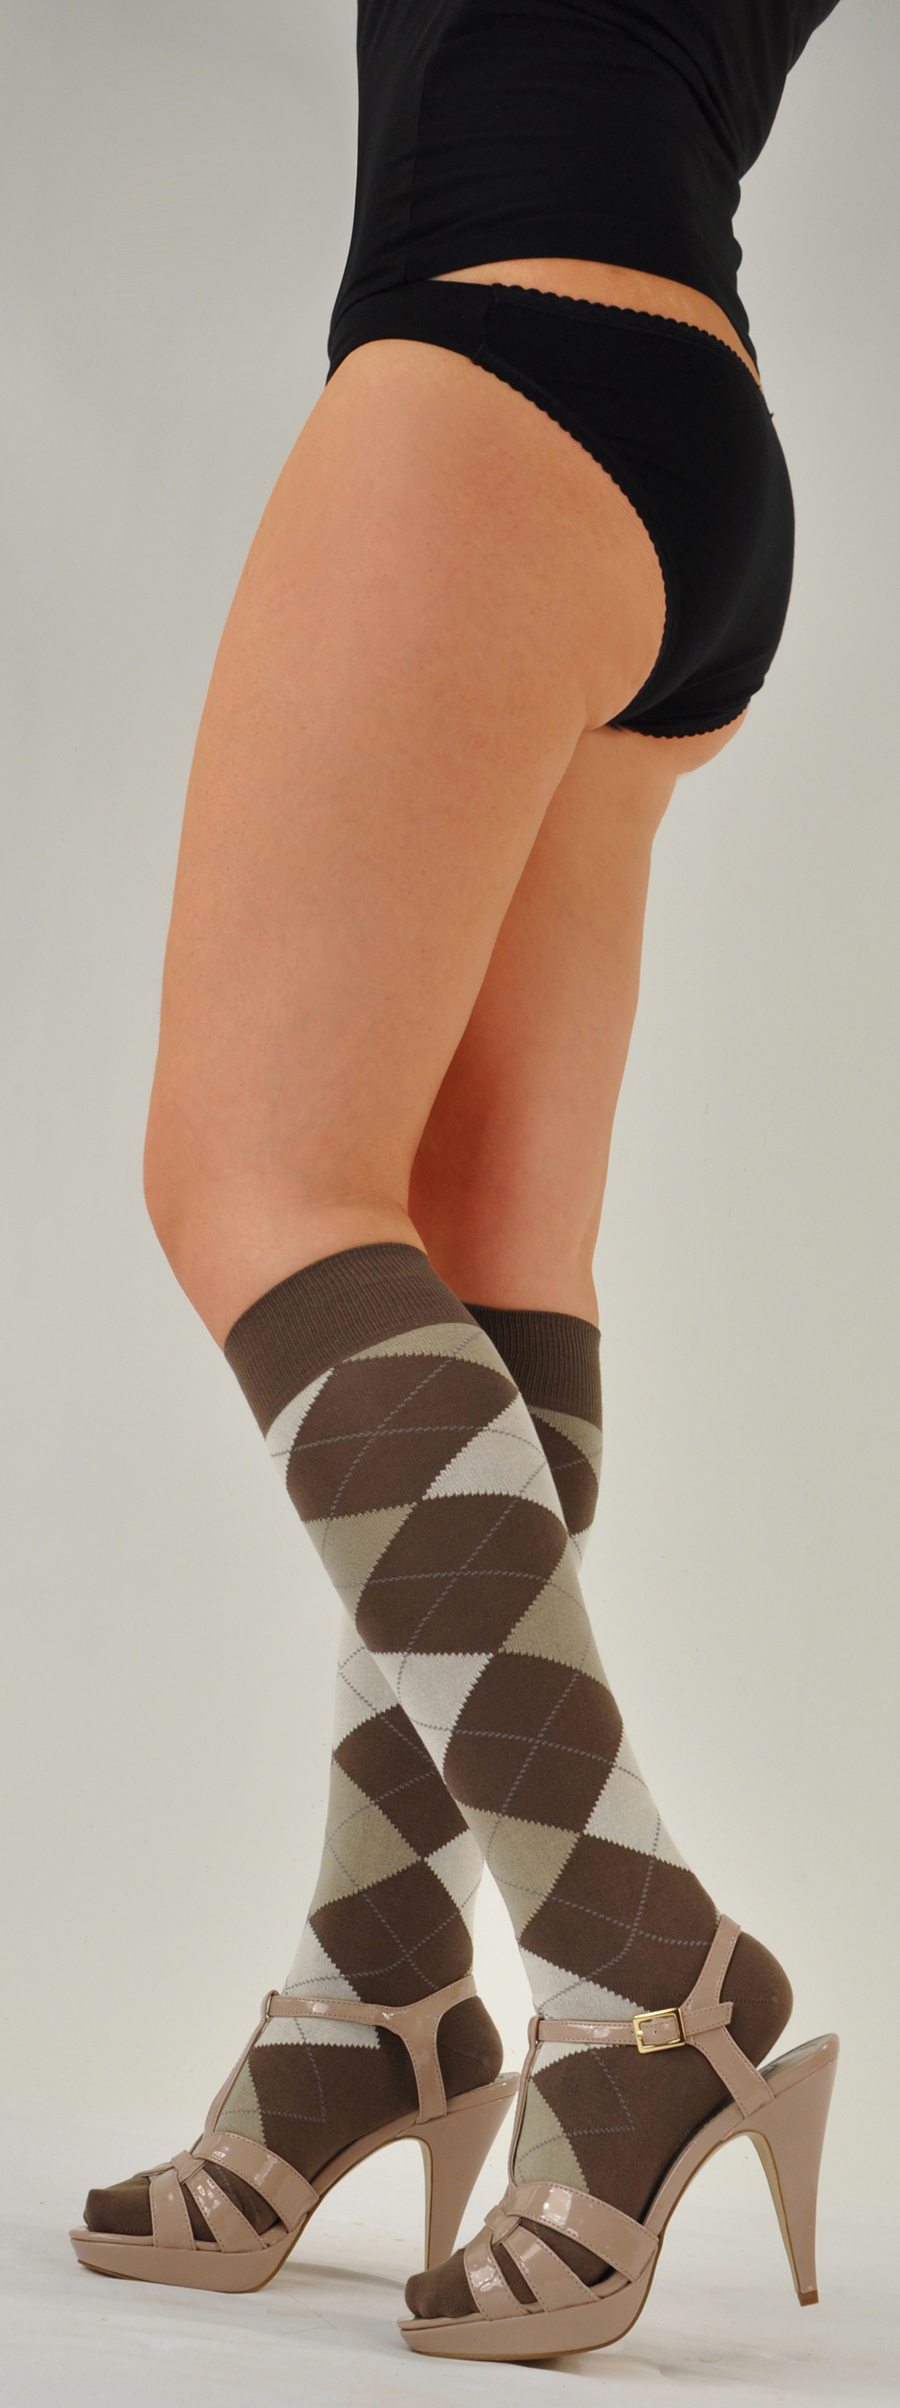 Argyle Socks. Preppy to perfection! Give your look a polished touch with argyle socks. Stock up on your favorite socks—shop our selection of sophisticated styles in this classic diamond pattern.